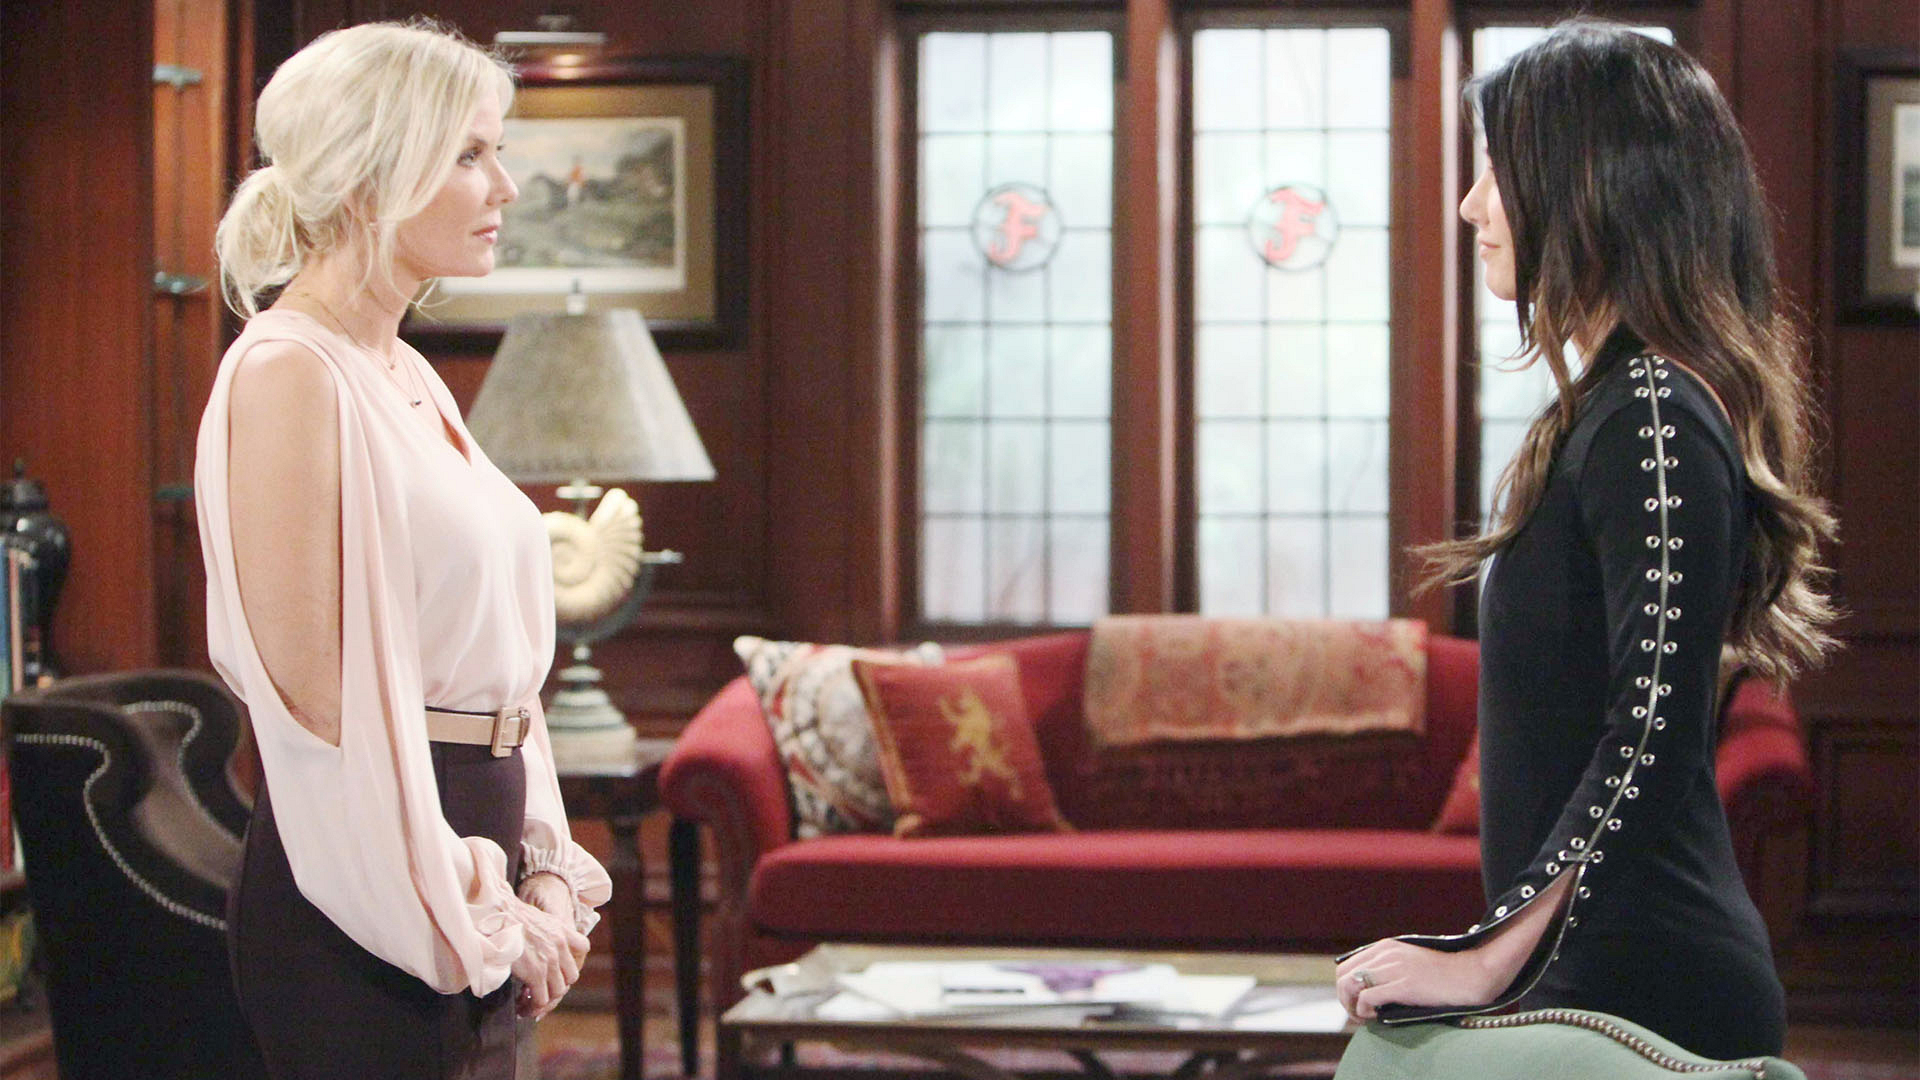 Brooke has second thoughts about divorcing Bill when Steffy shares that he and Liam have set aside their differences.